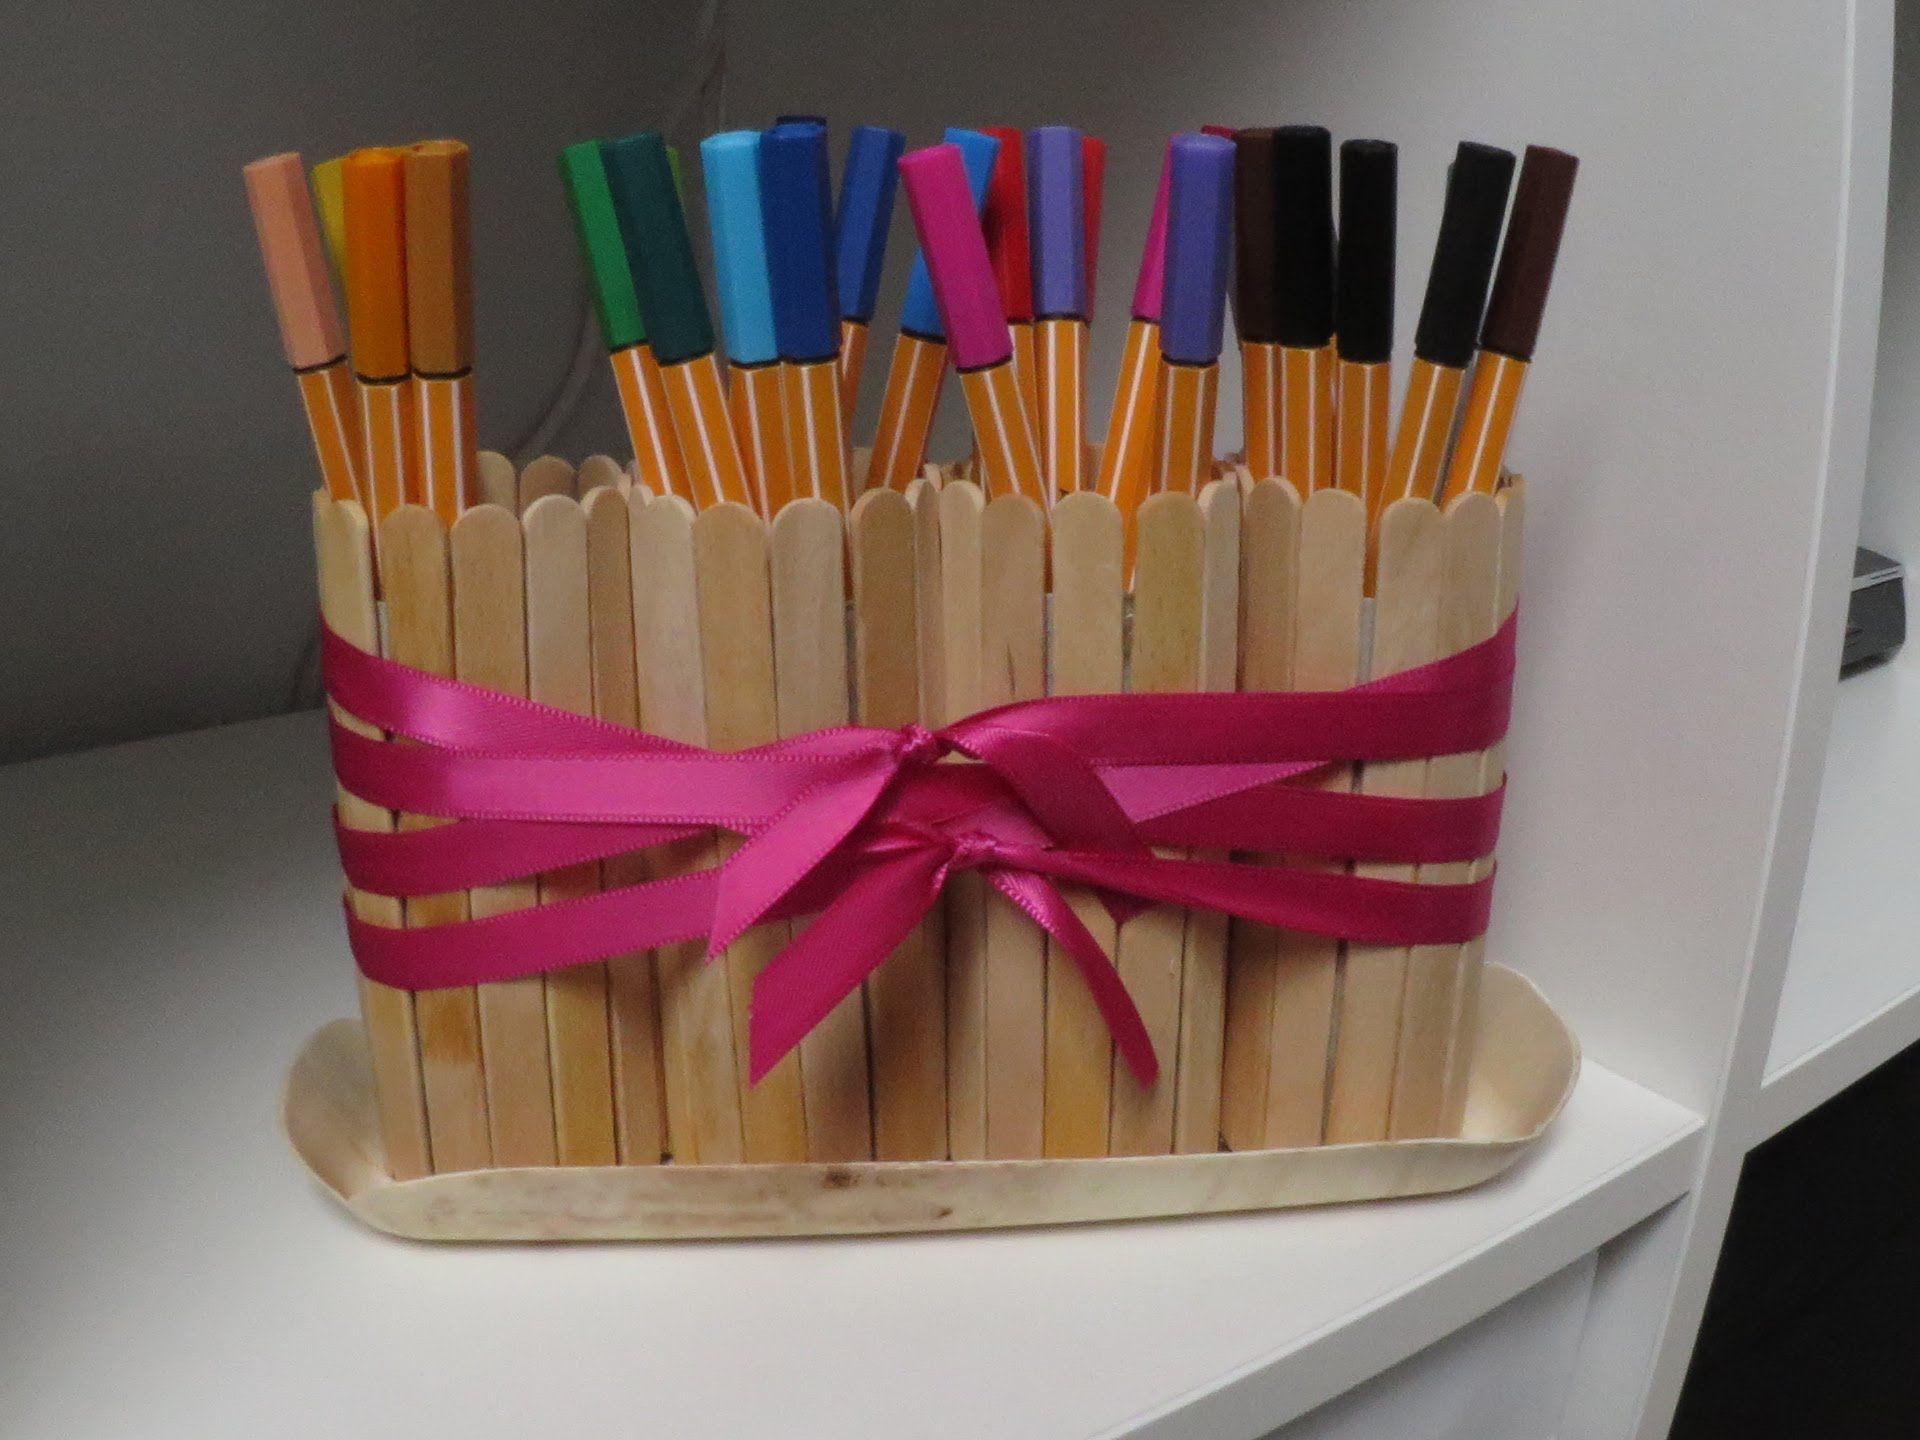 diy upcycling pencil holder pencil case stiftehalter. Black Bedroom Furniture Sets. Home Design Ideas